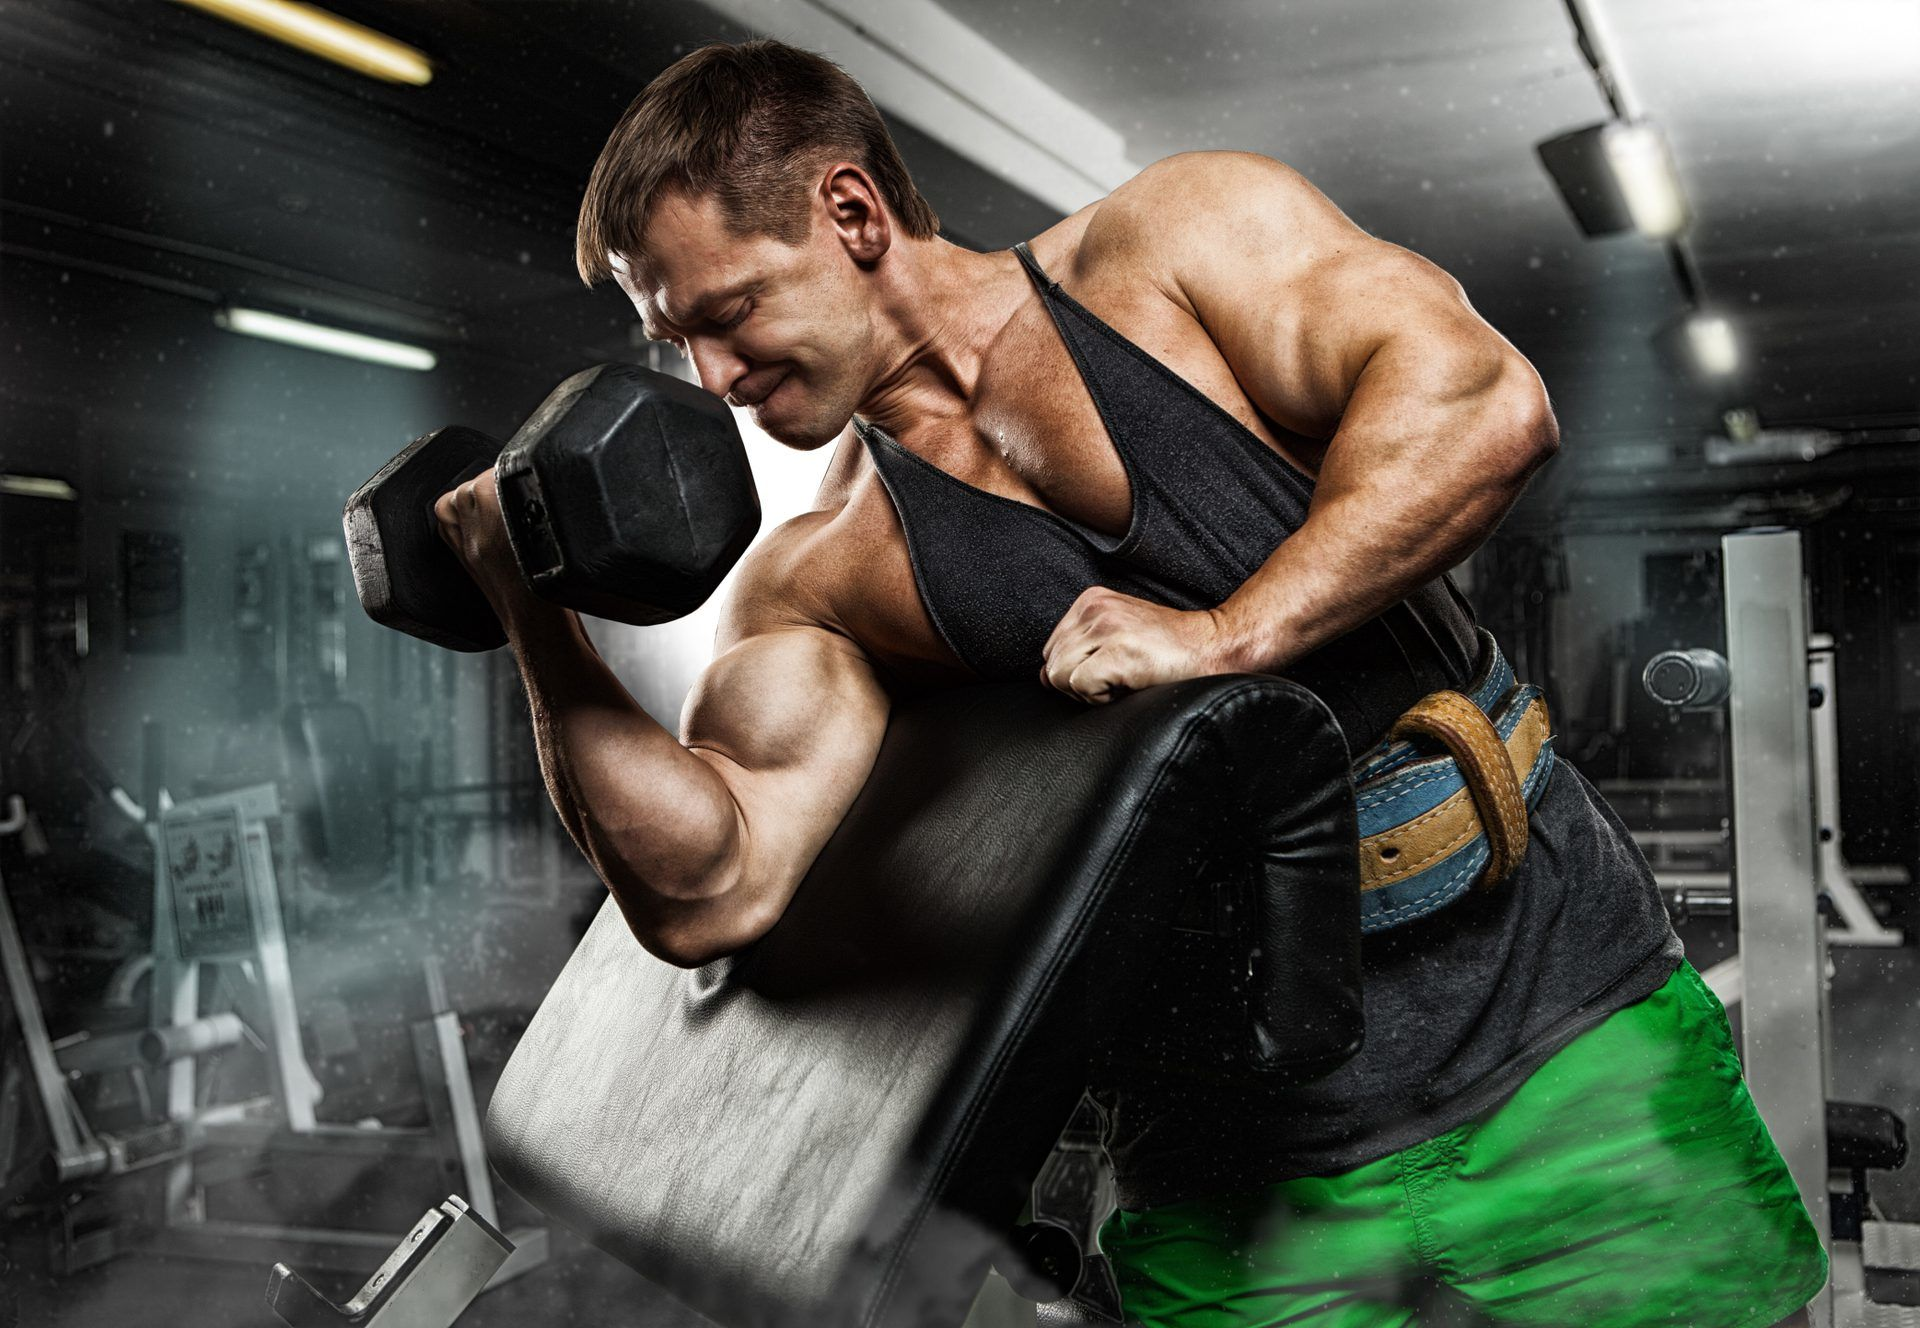 All You Need to Know About Muscle Myths